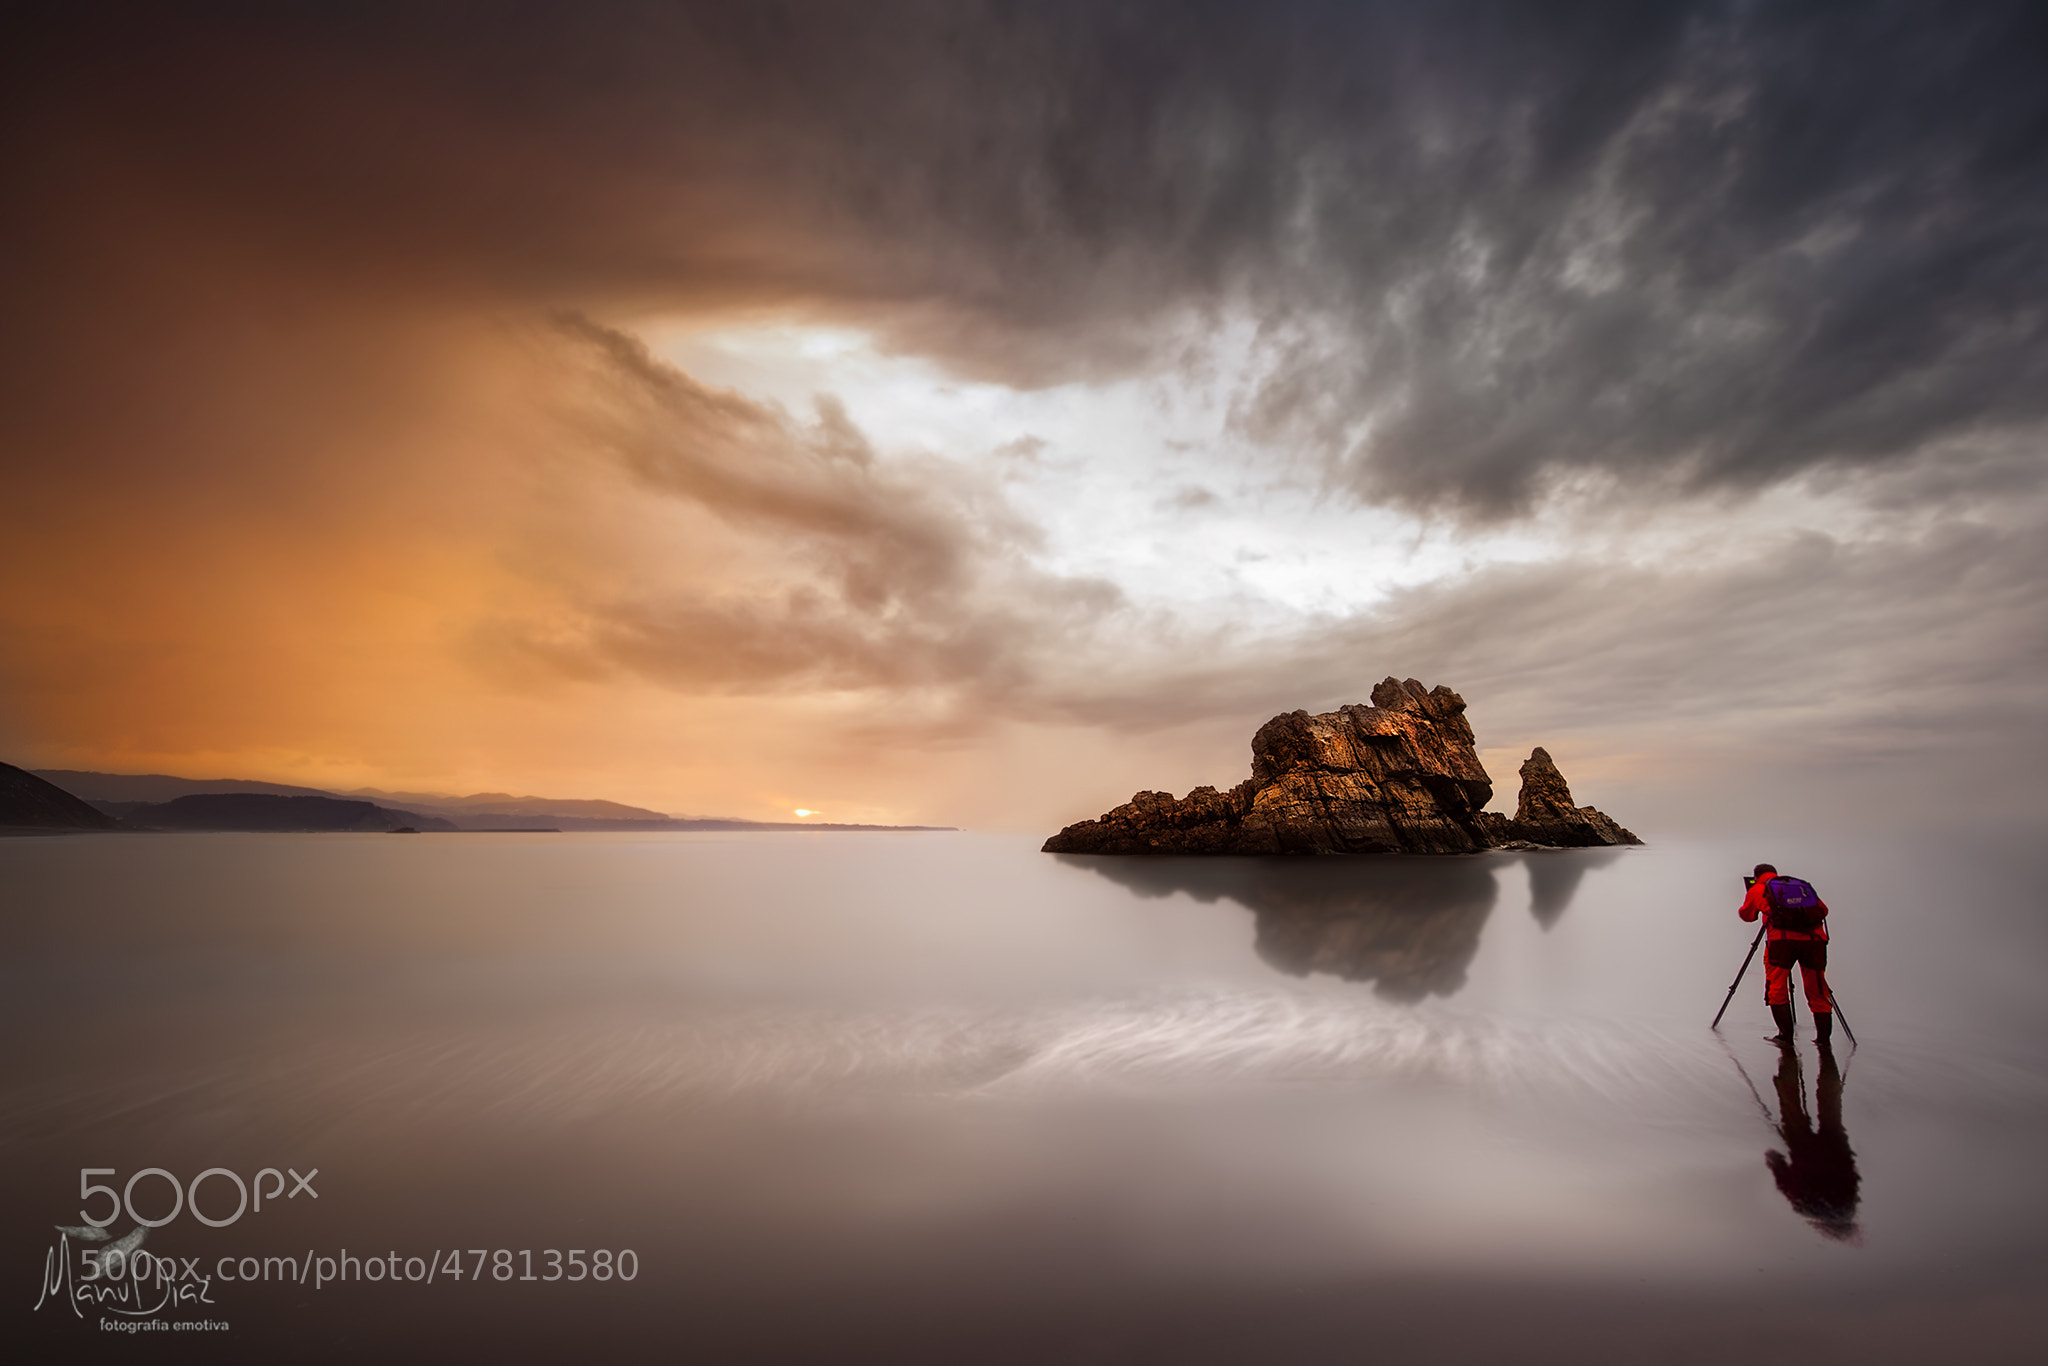 Photograph JavierLT (Playón de Bayas) by Manu Díaz on 500px